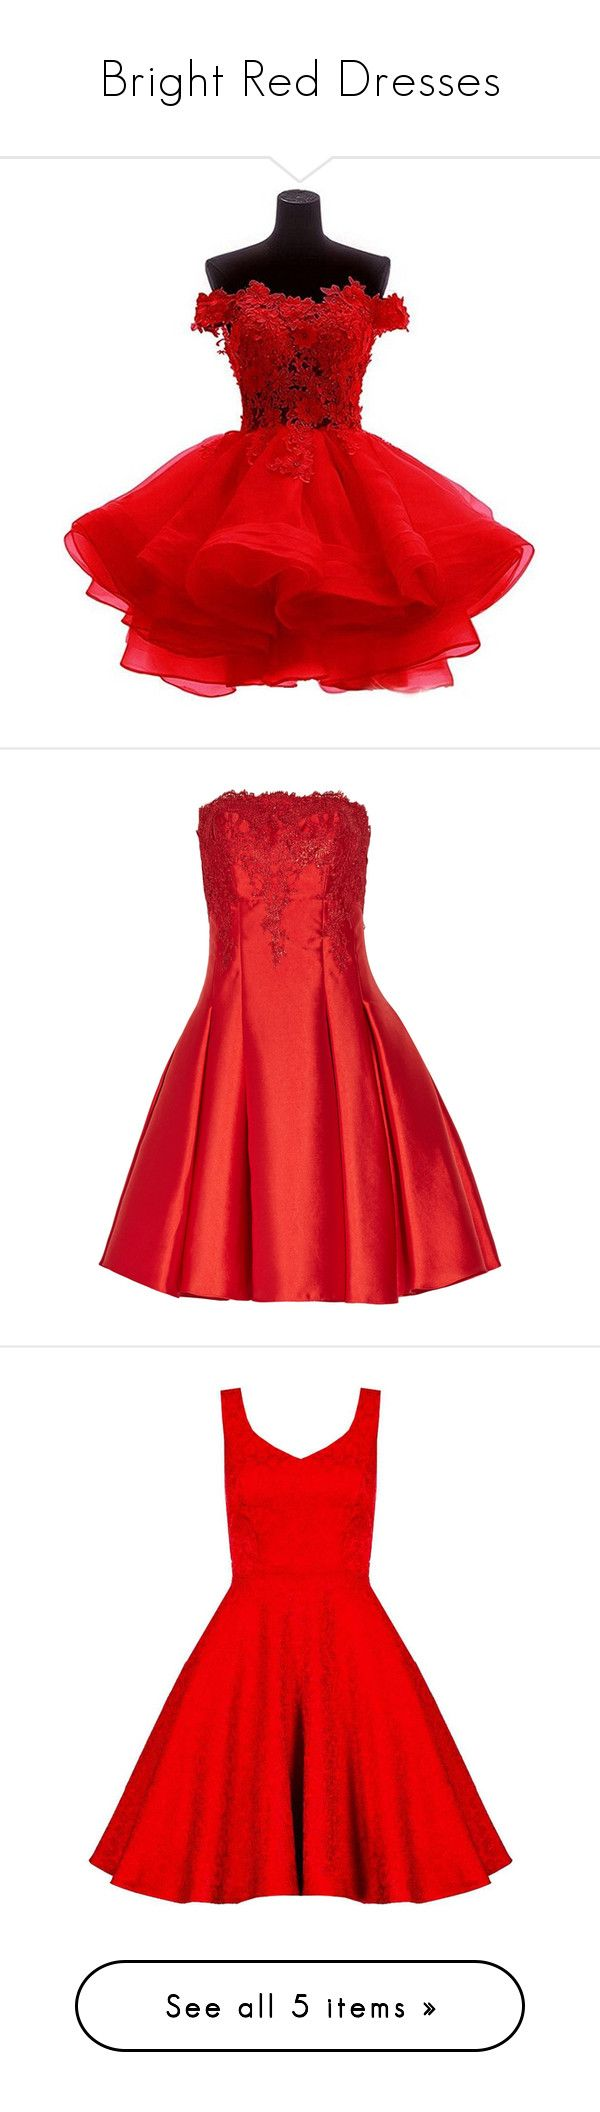 """Bright Red Dresses"" by tegan-b-riley on Polyvore featuring dresses, red lace dresses, lace cocktail dresses, red lace cocktail dress, beaded prom dresses, off-the-shoulder lace dresses, red, strapless cocktail dresses, lace overlay dress and lace dress"